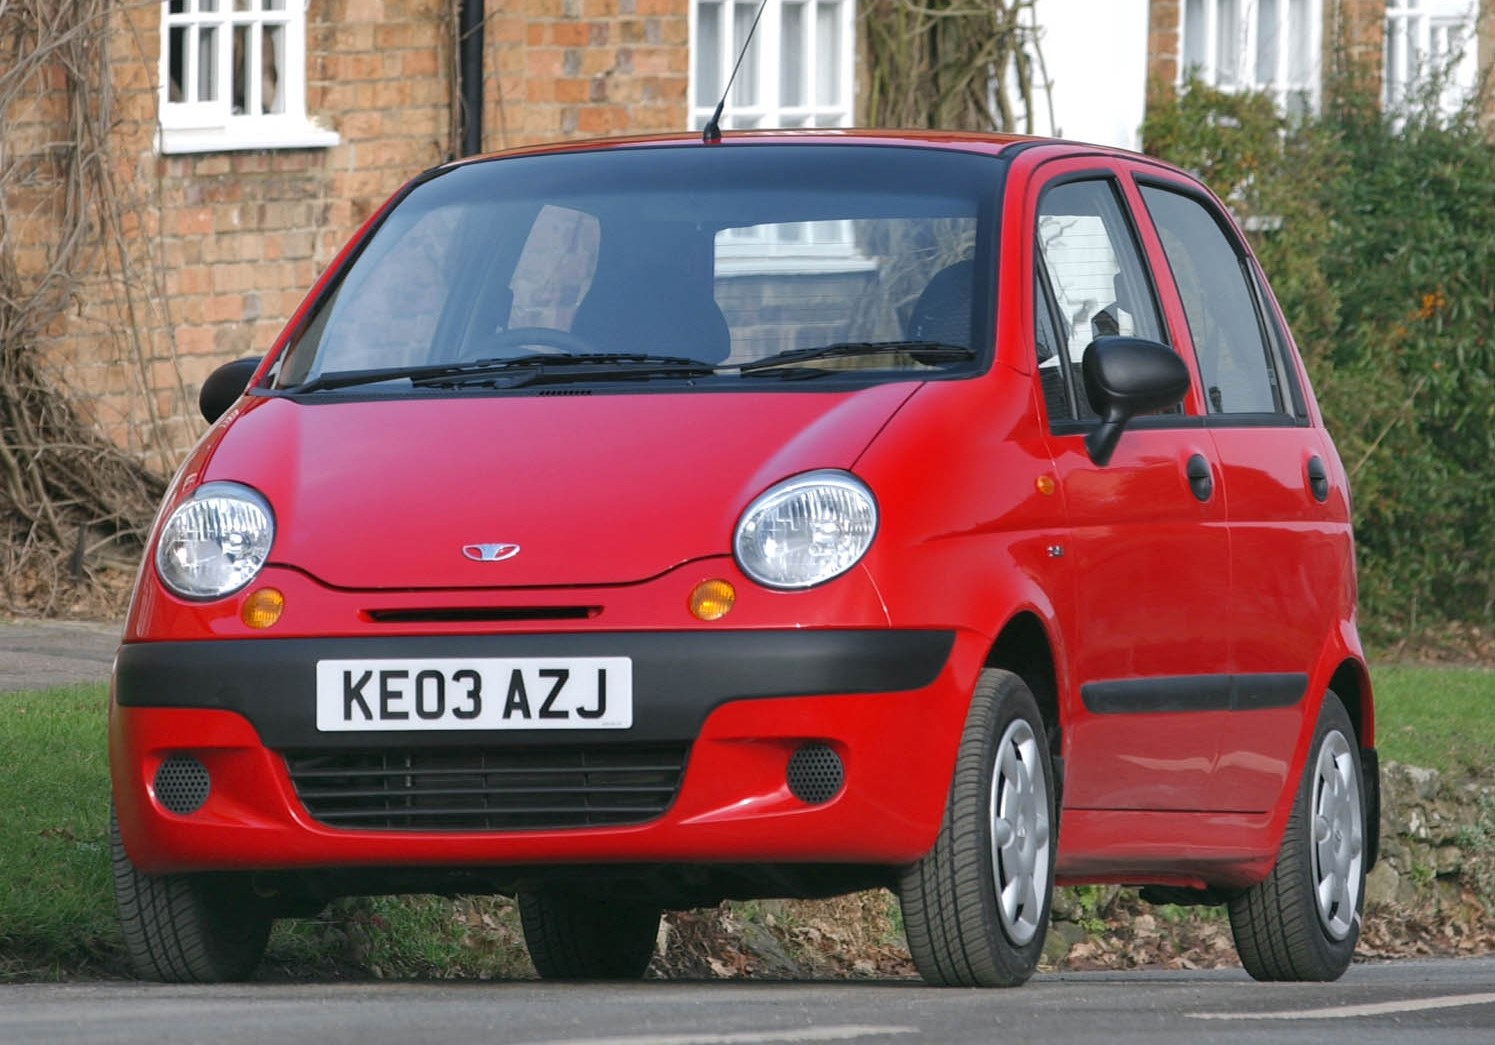 Daewoo Matiz Hatchback (1998 - 2005) Photos | Parkers